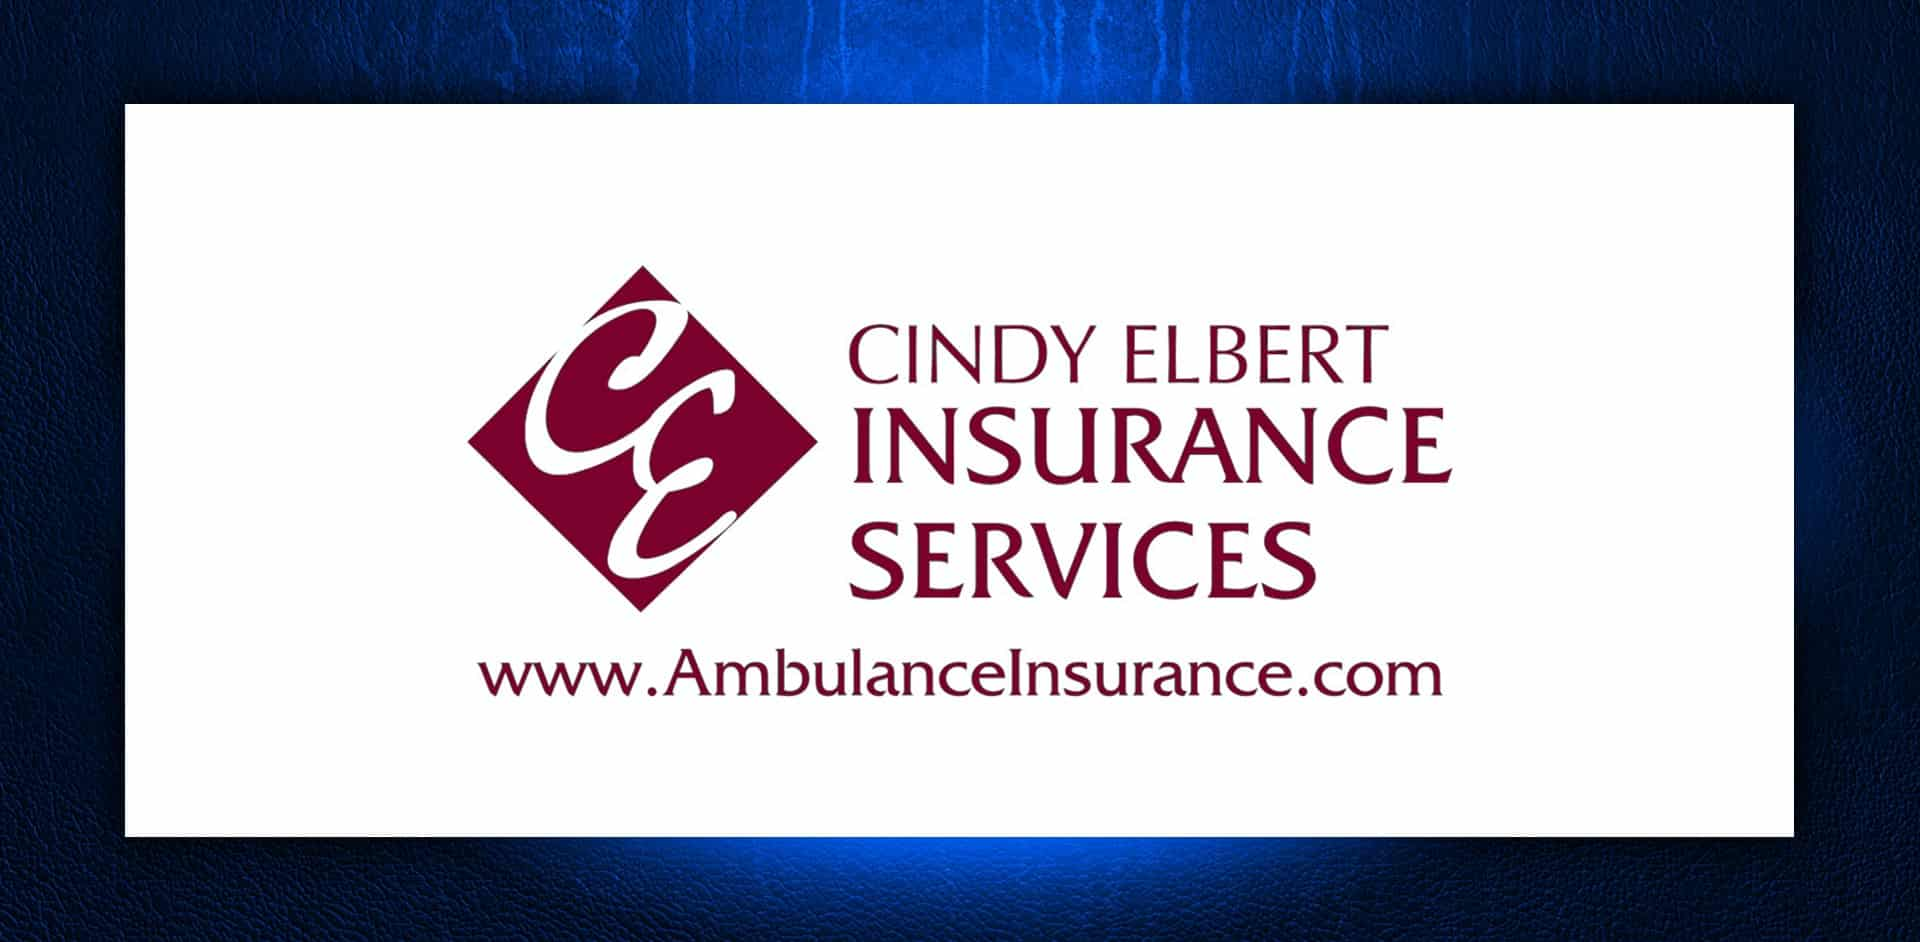 Cindy Elbert Insurance Services, Inc.